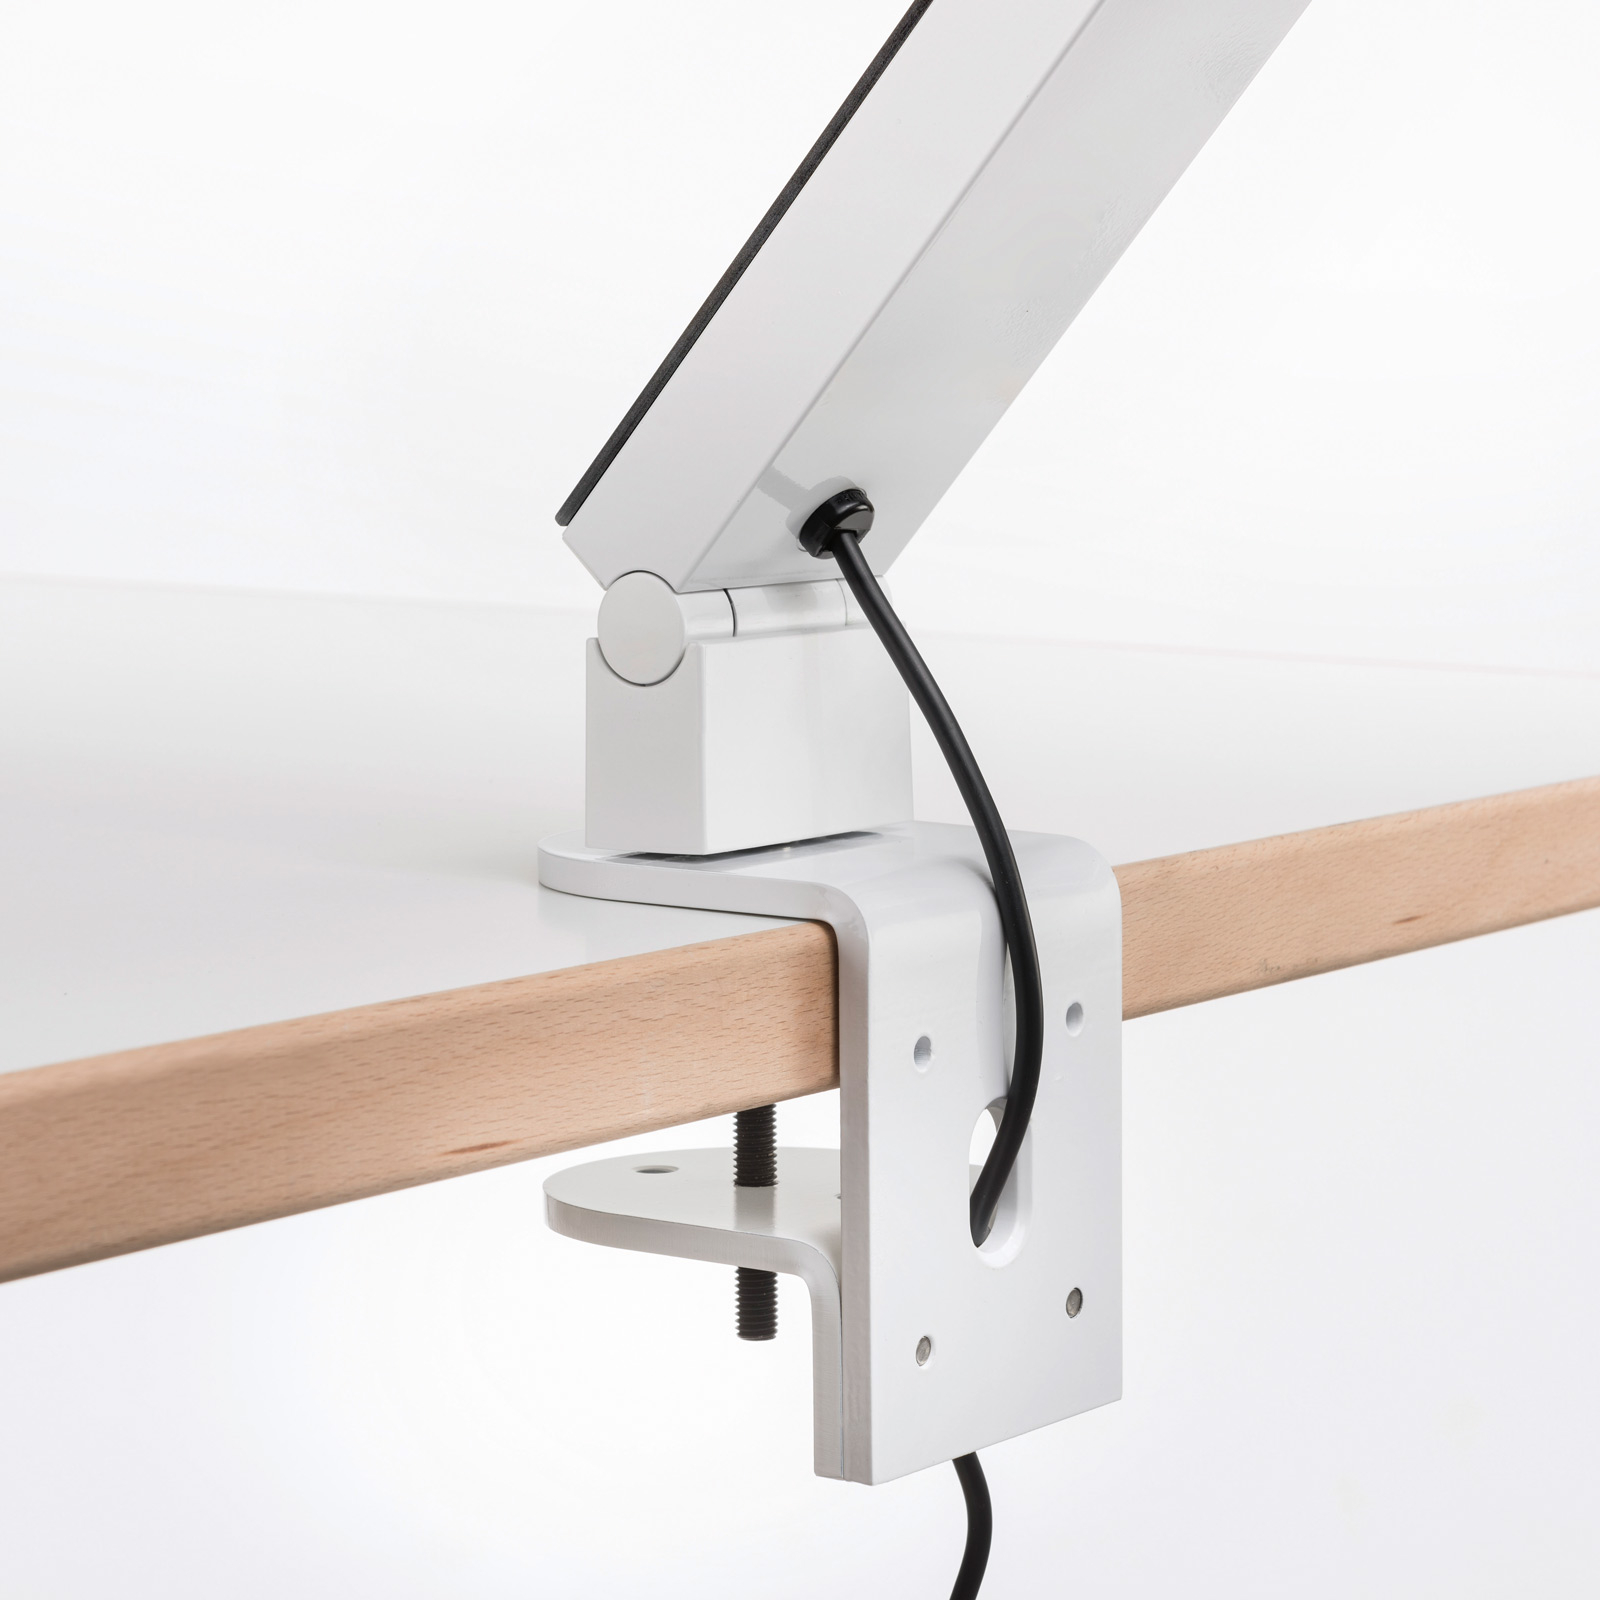 Luctra TableProRadial lampe à poser pince blanche